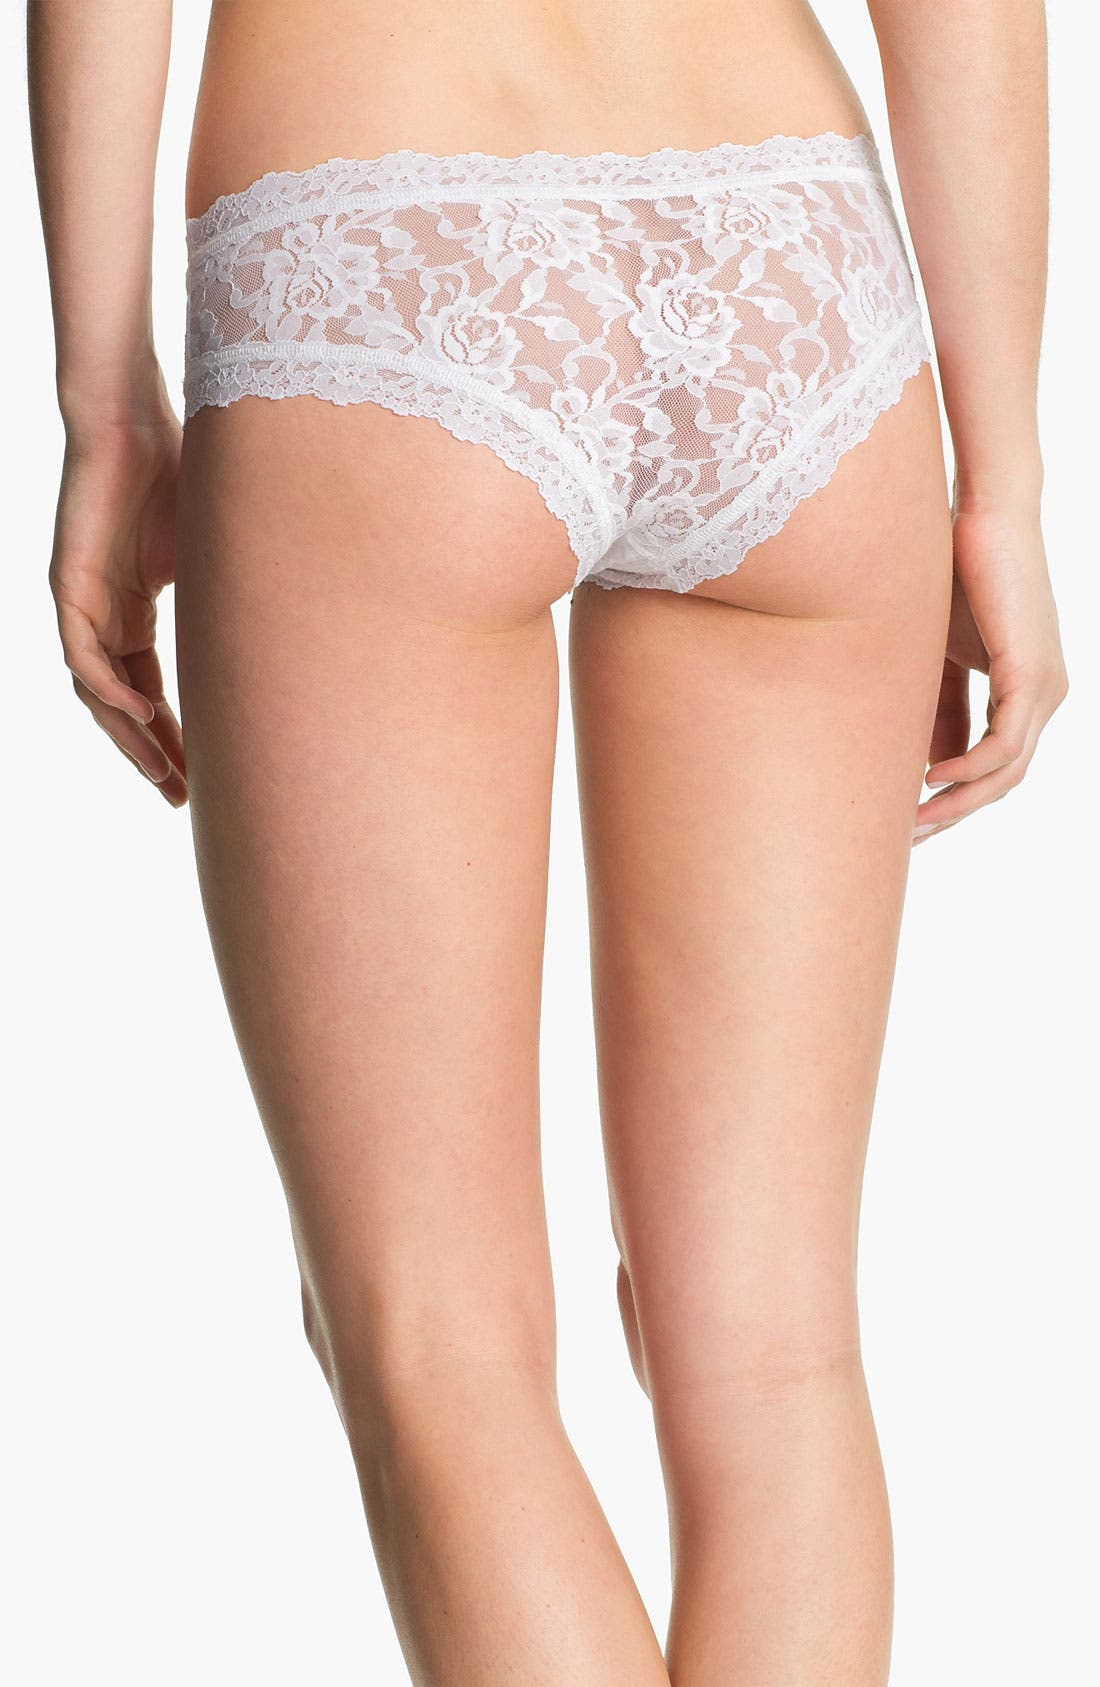 Alternate Image 2  - Hanky Panky 'I Do' Swarovski Crystal Cheeky Hipster Briefs